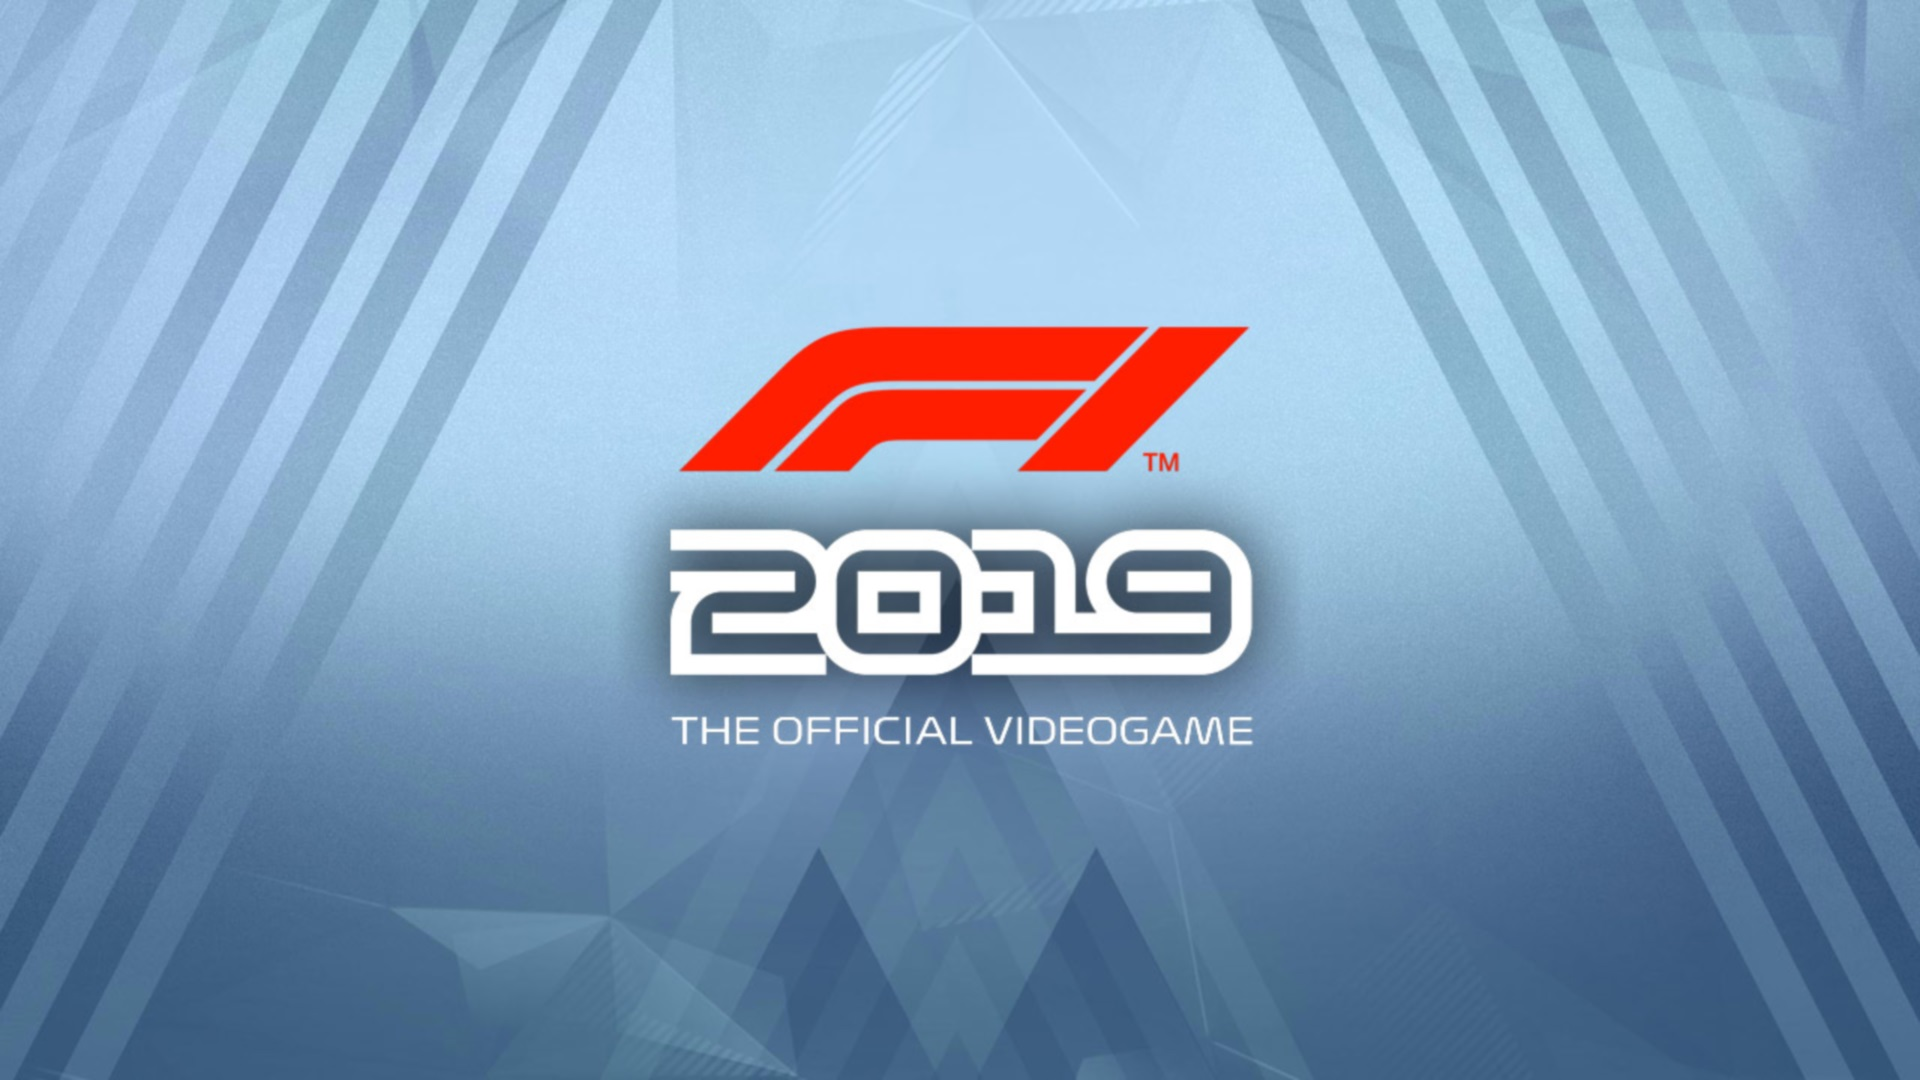 Enjoy F1 2019 for free in the next 30 days